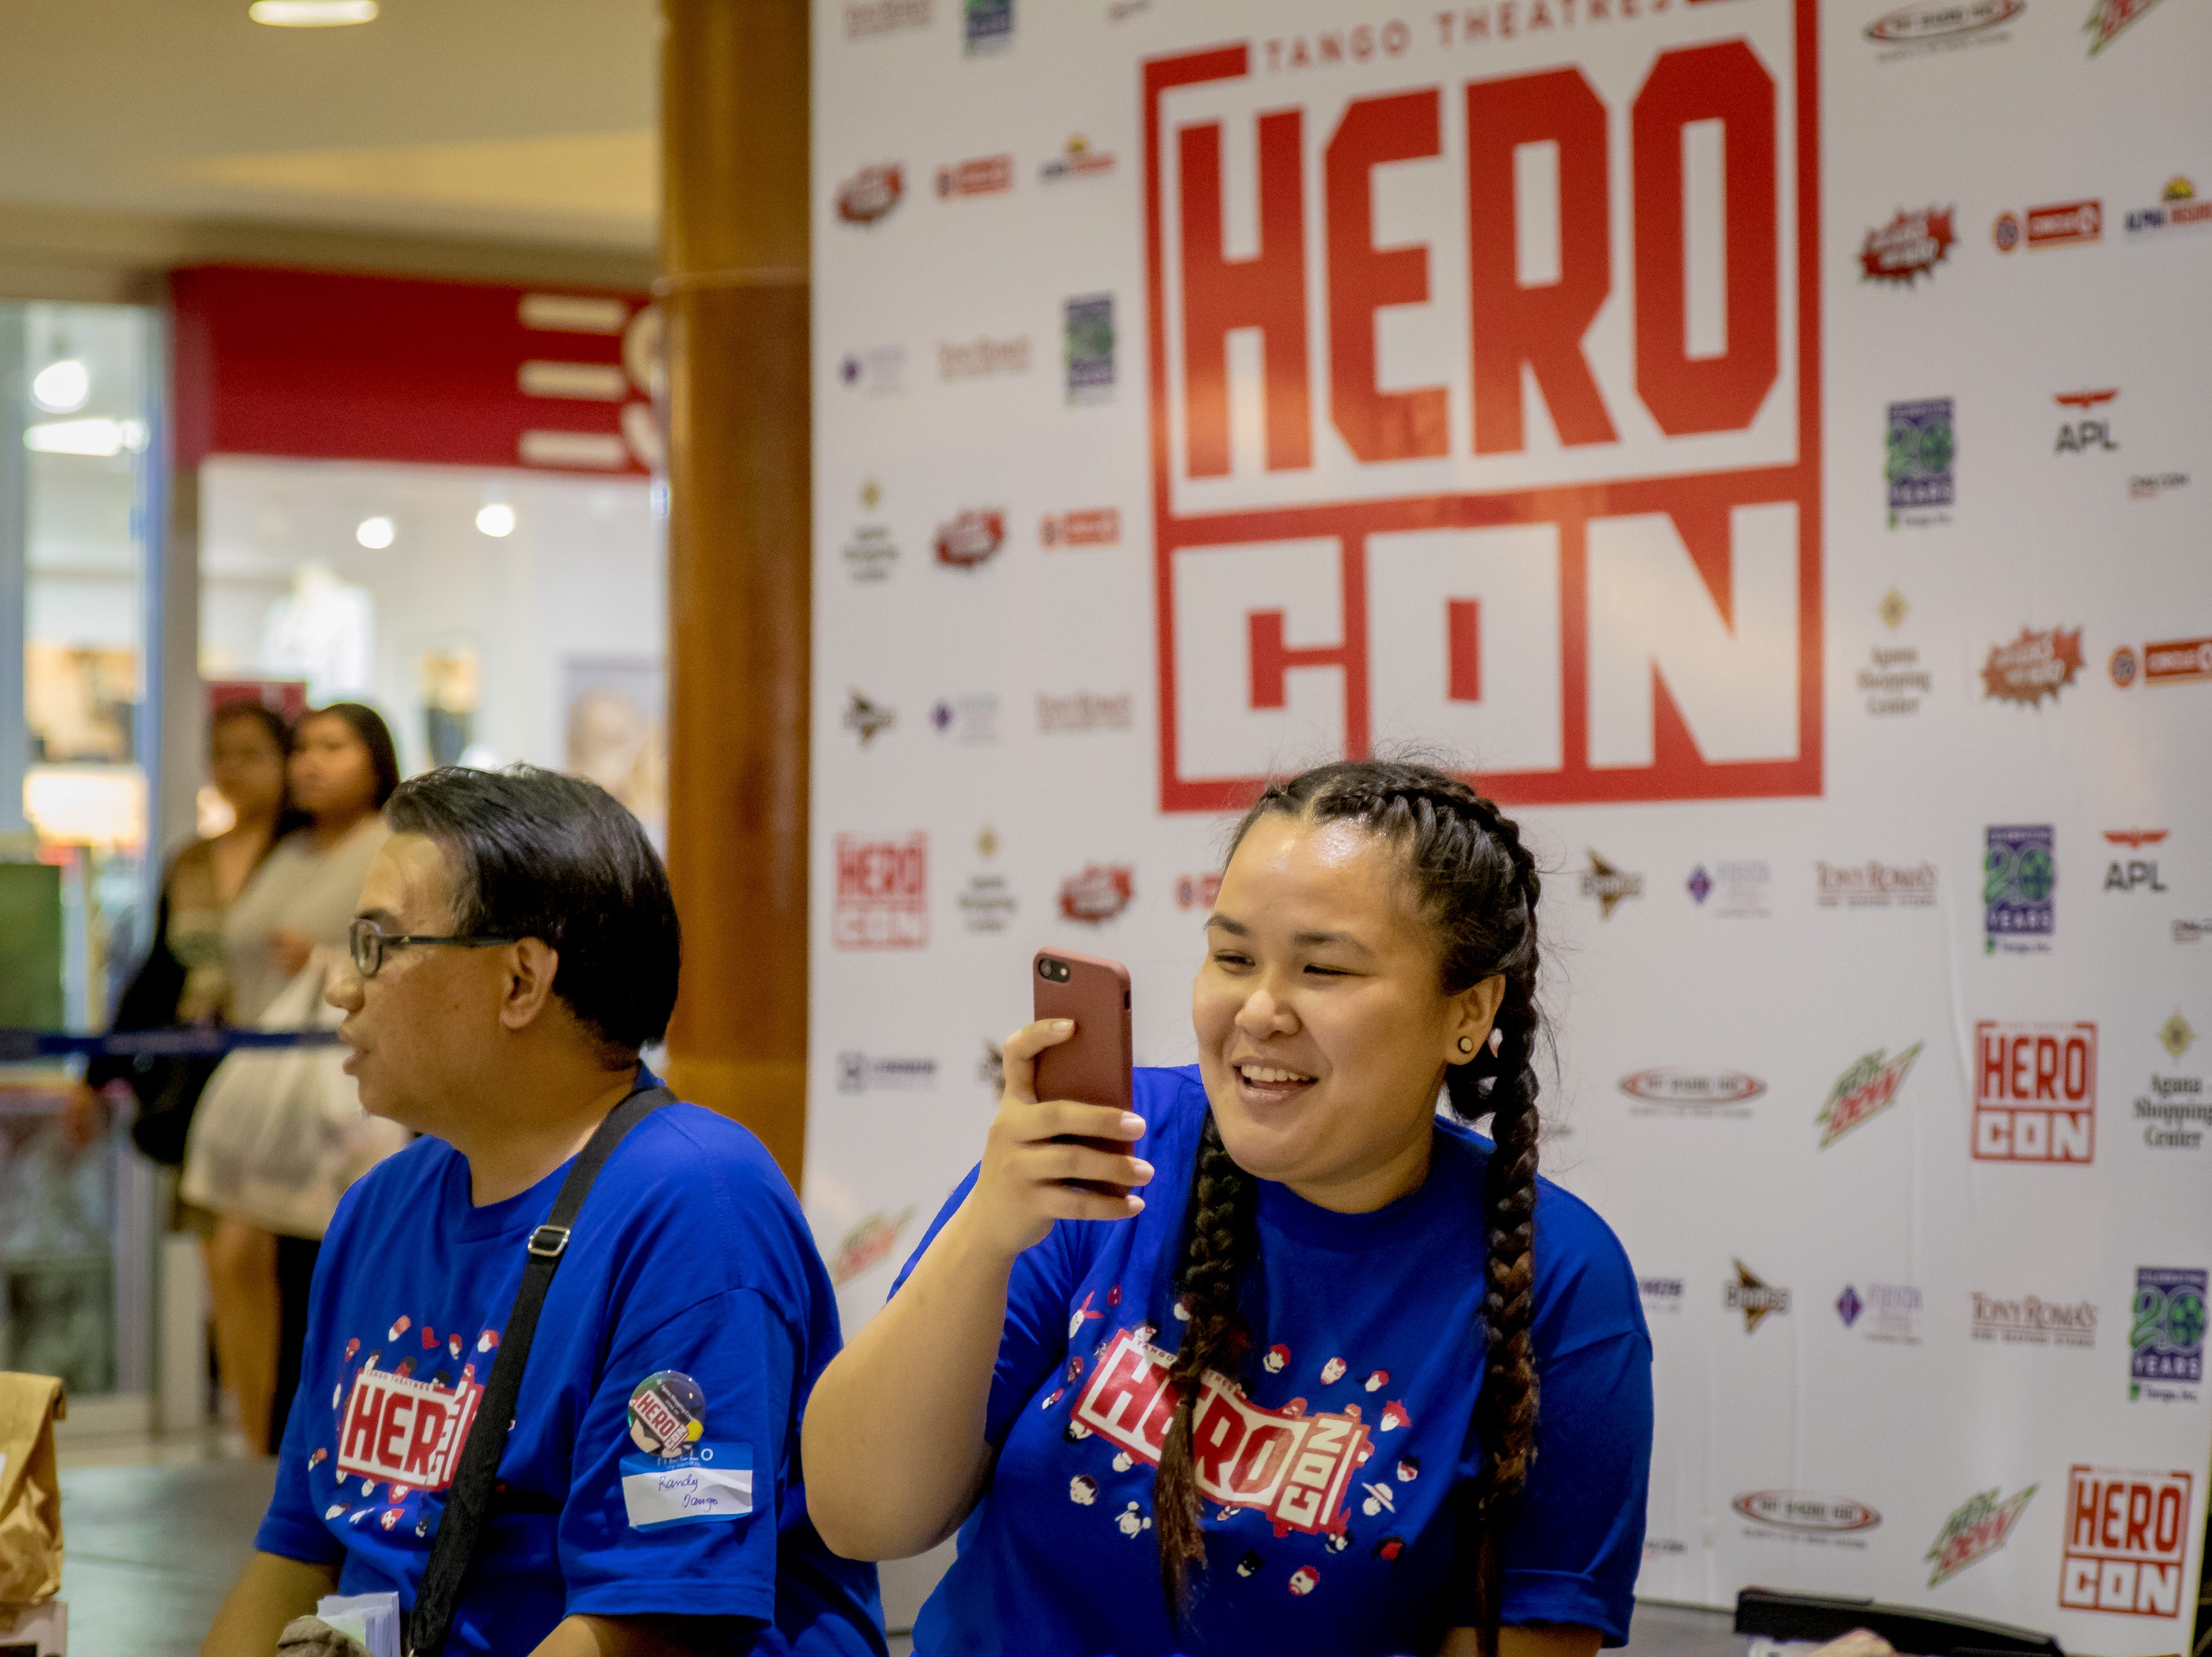 Attendees get excited as they see various cosplayers during the Herocon event held at Agana Shopping Center on Dec. 9.